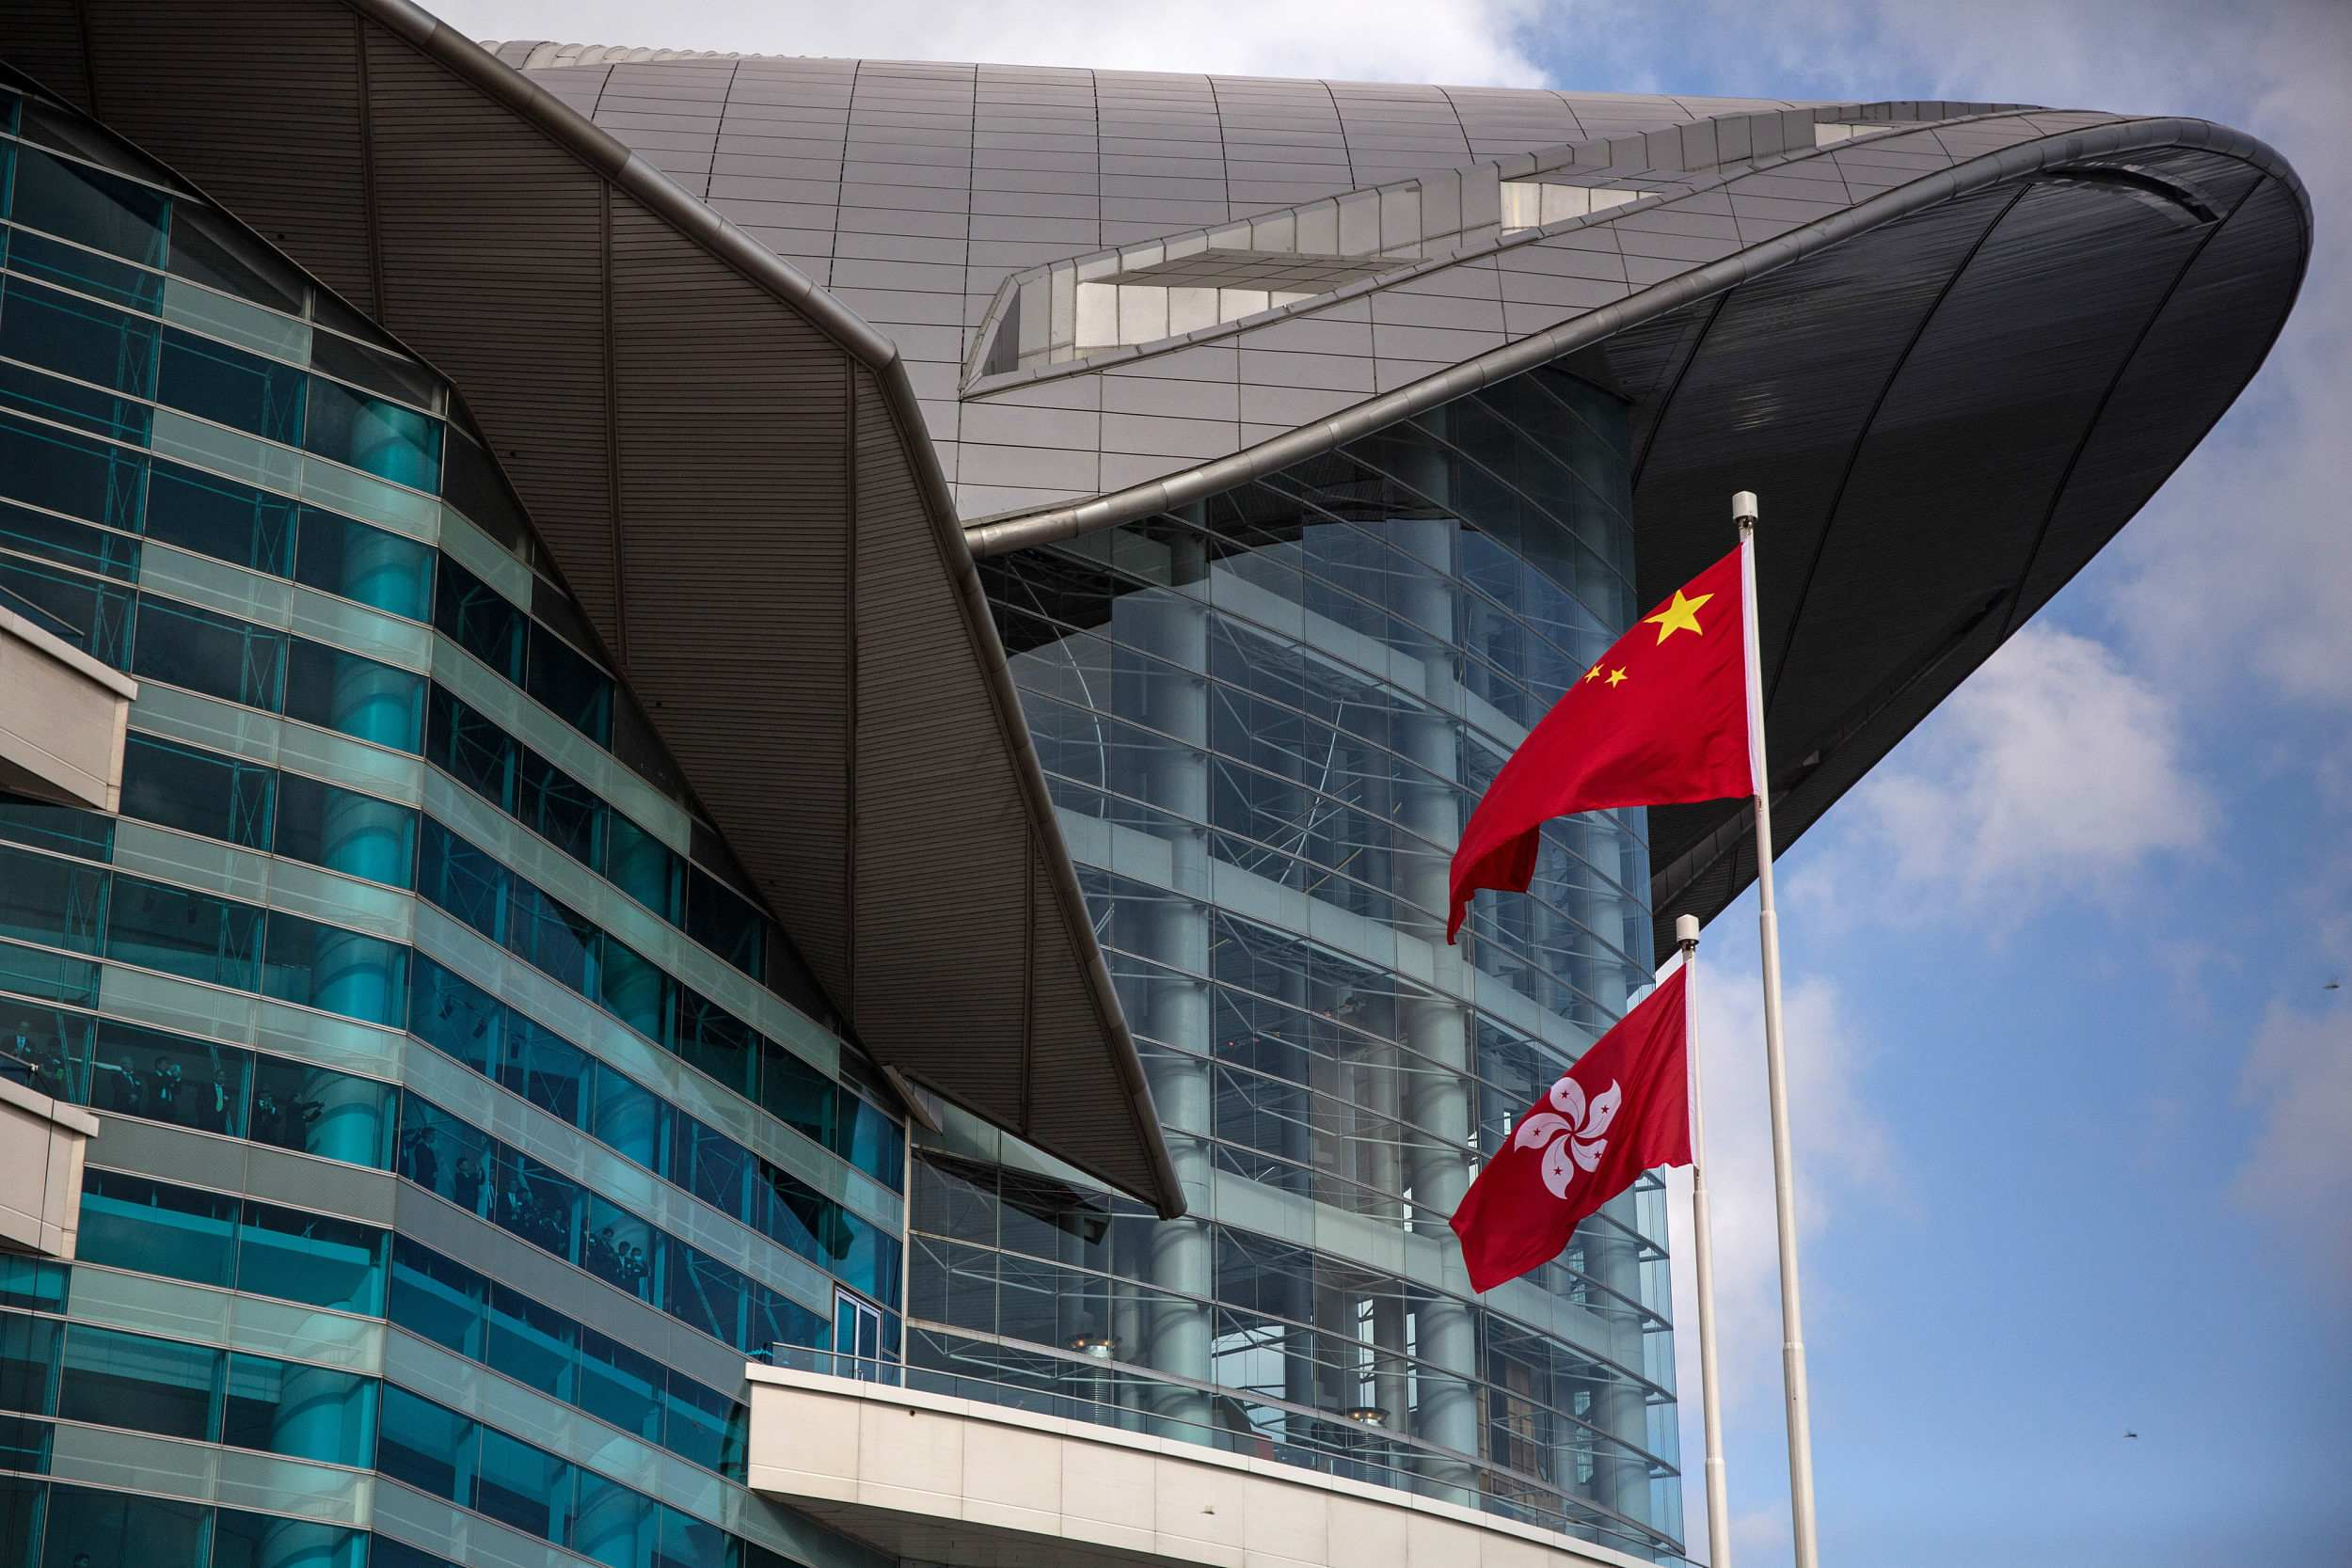 Hong Kong urges foreign governments not to interfere in its affairs